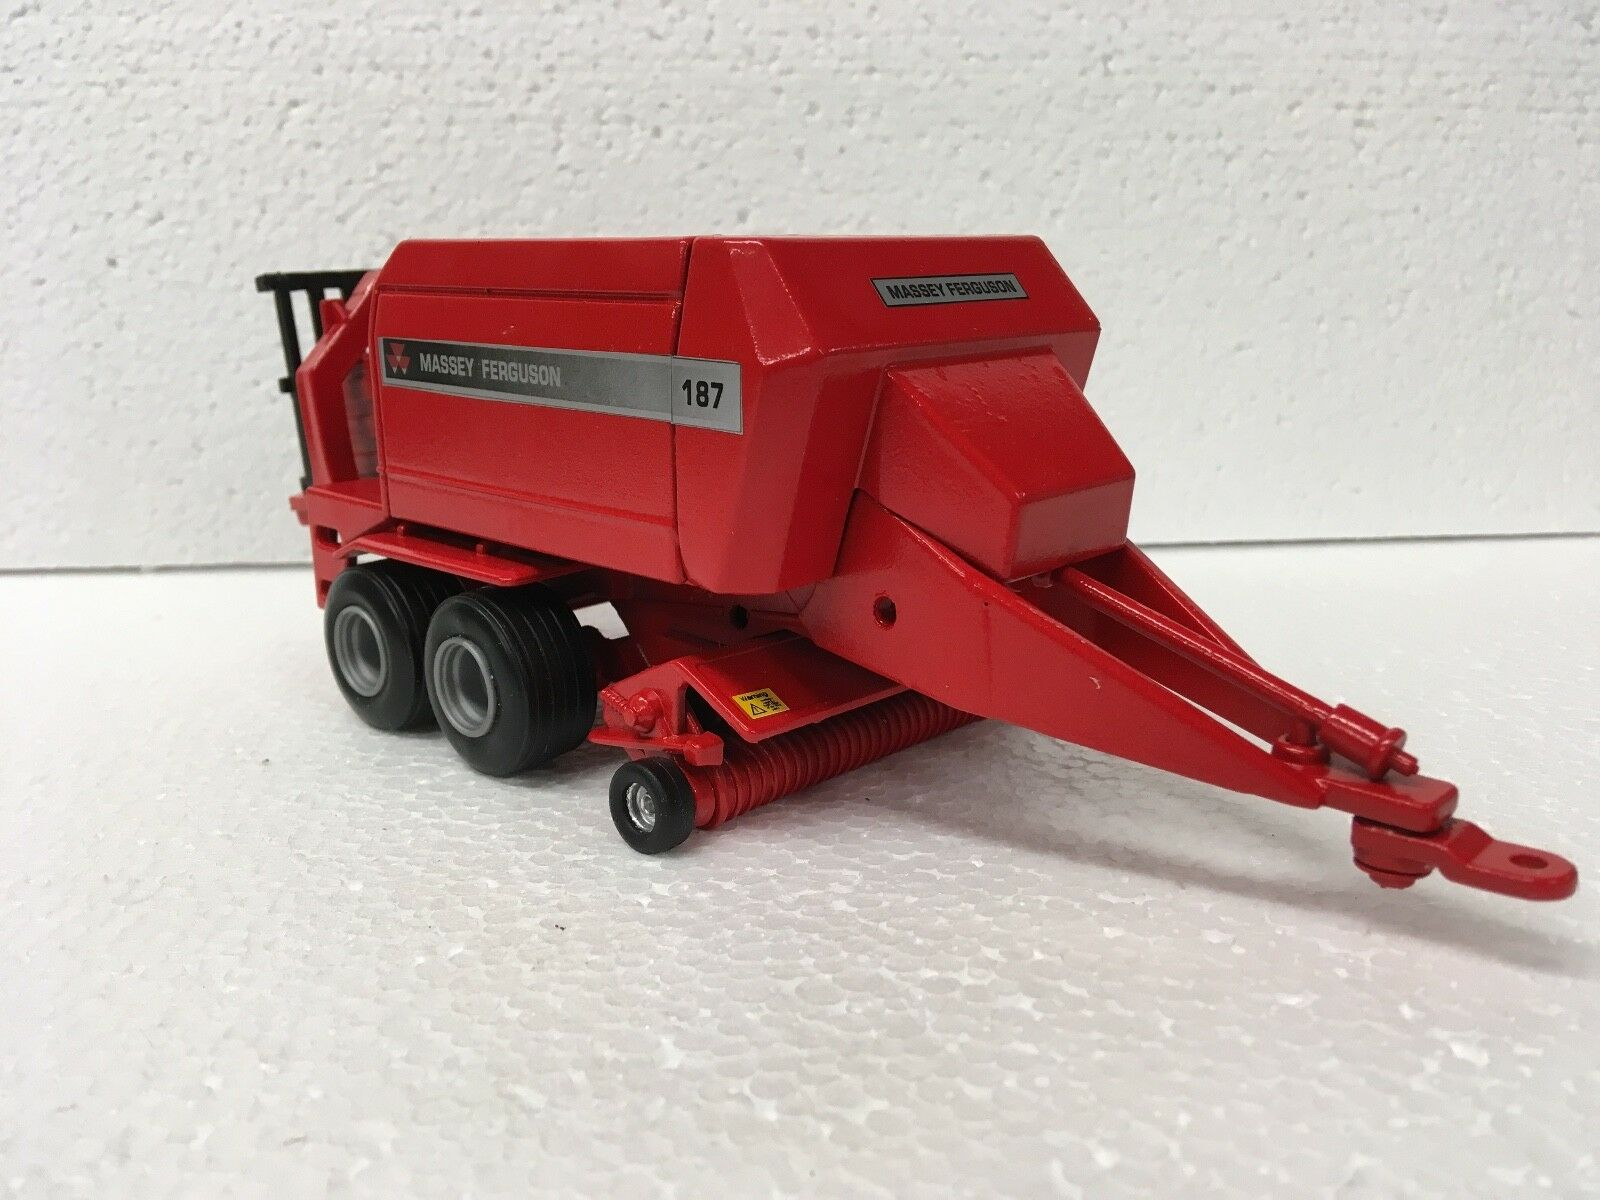 Britains Massey Ferguson MF187 Botteleuse Conversion